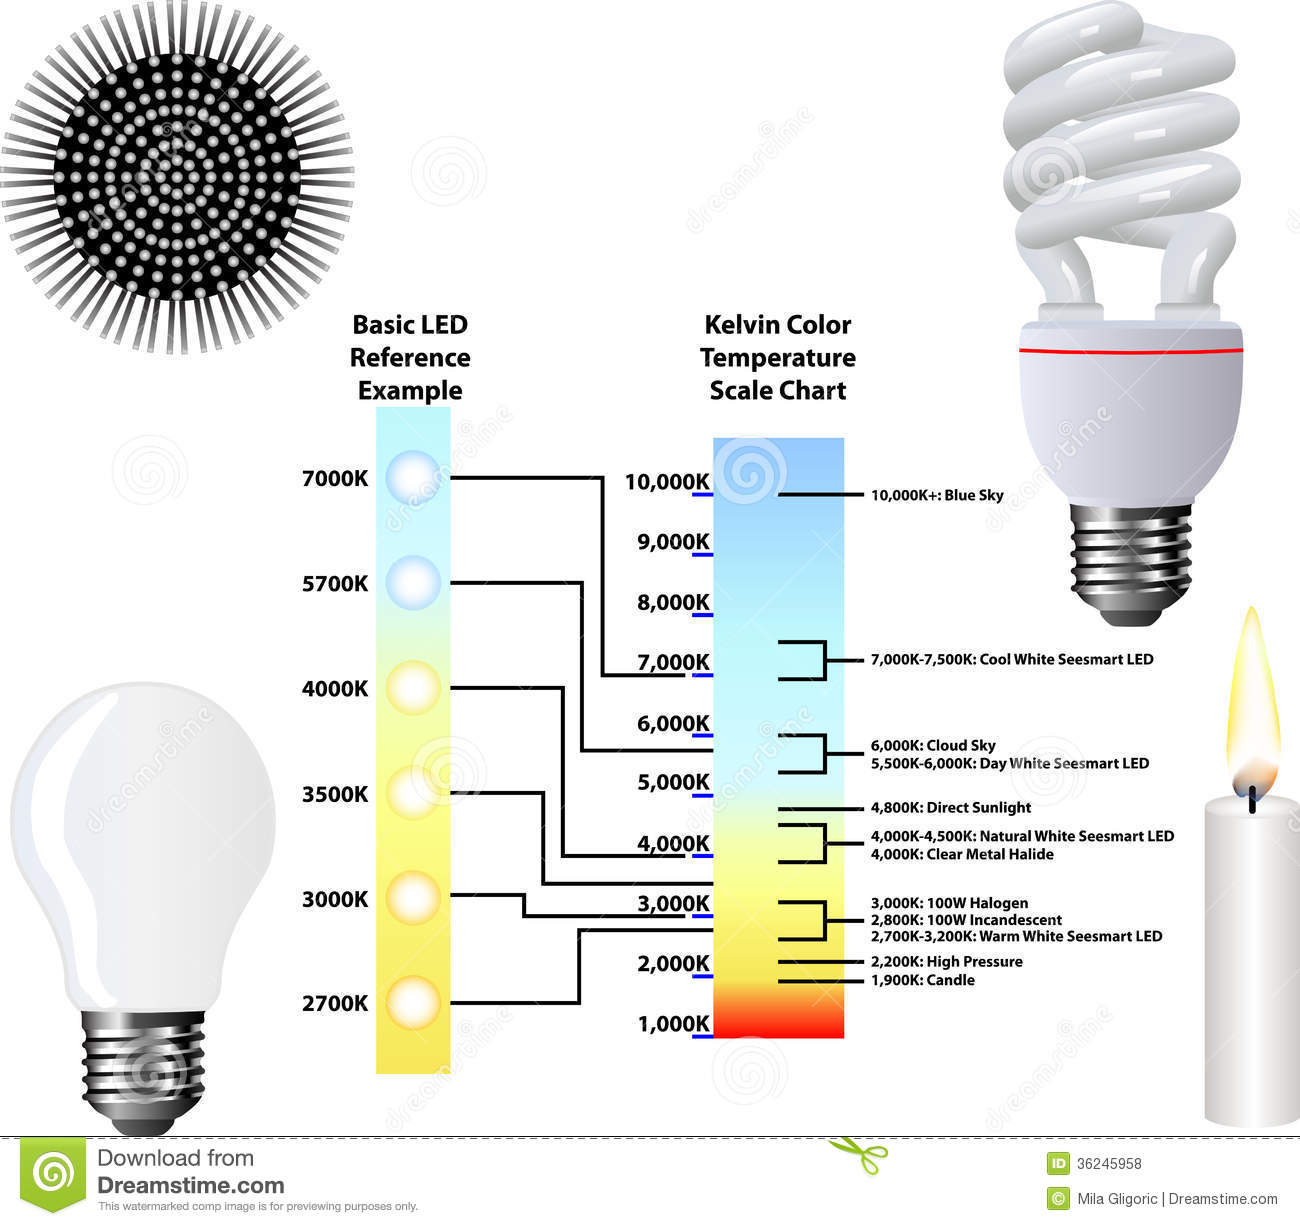 Kelvin Color Temperature Scale Chart Royalty Free Stock Photos ...